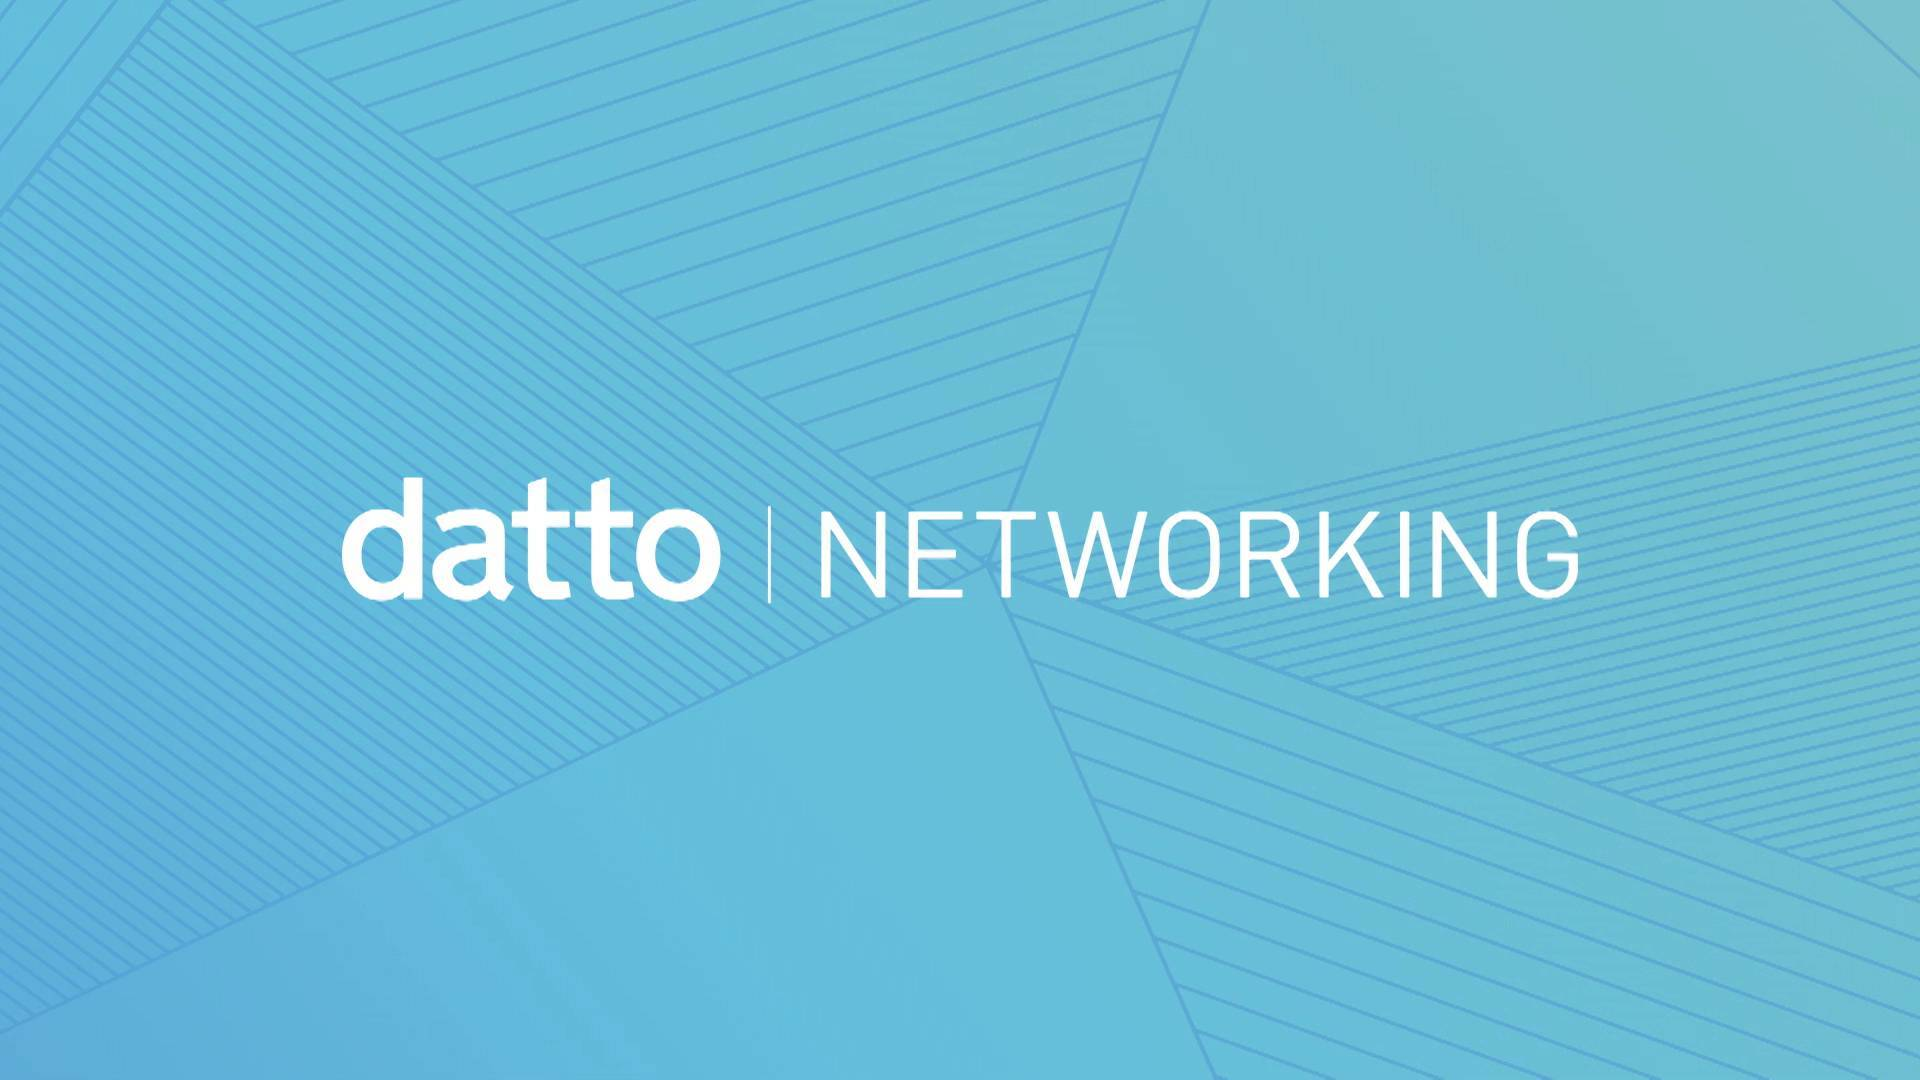 datto networking